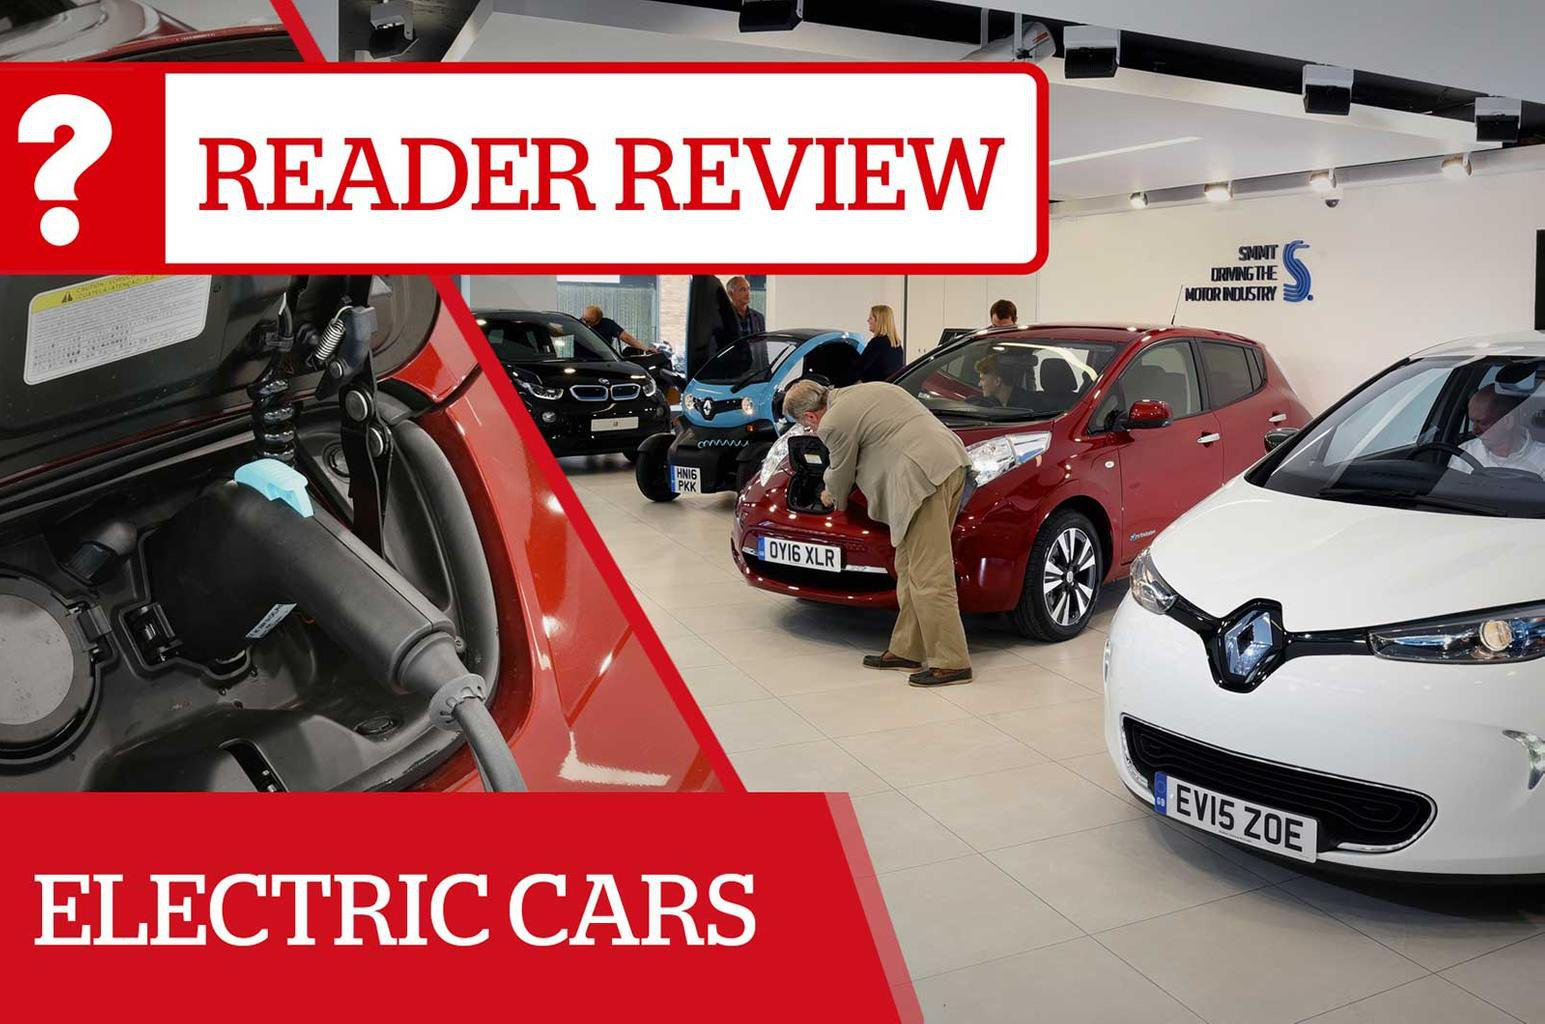 Video: Would you buy an electric car? - Reader test team